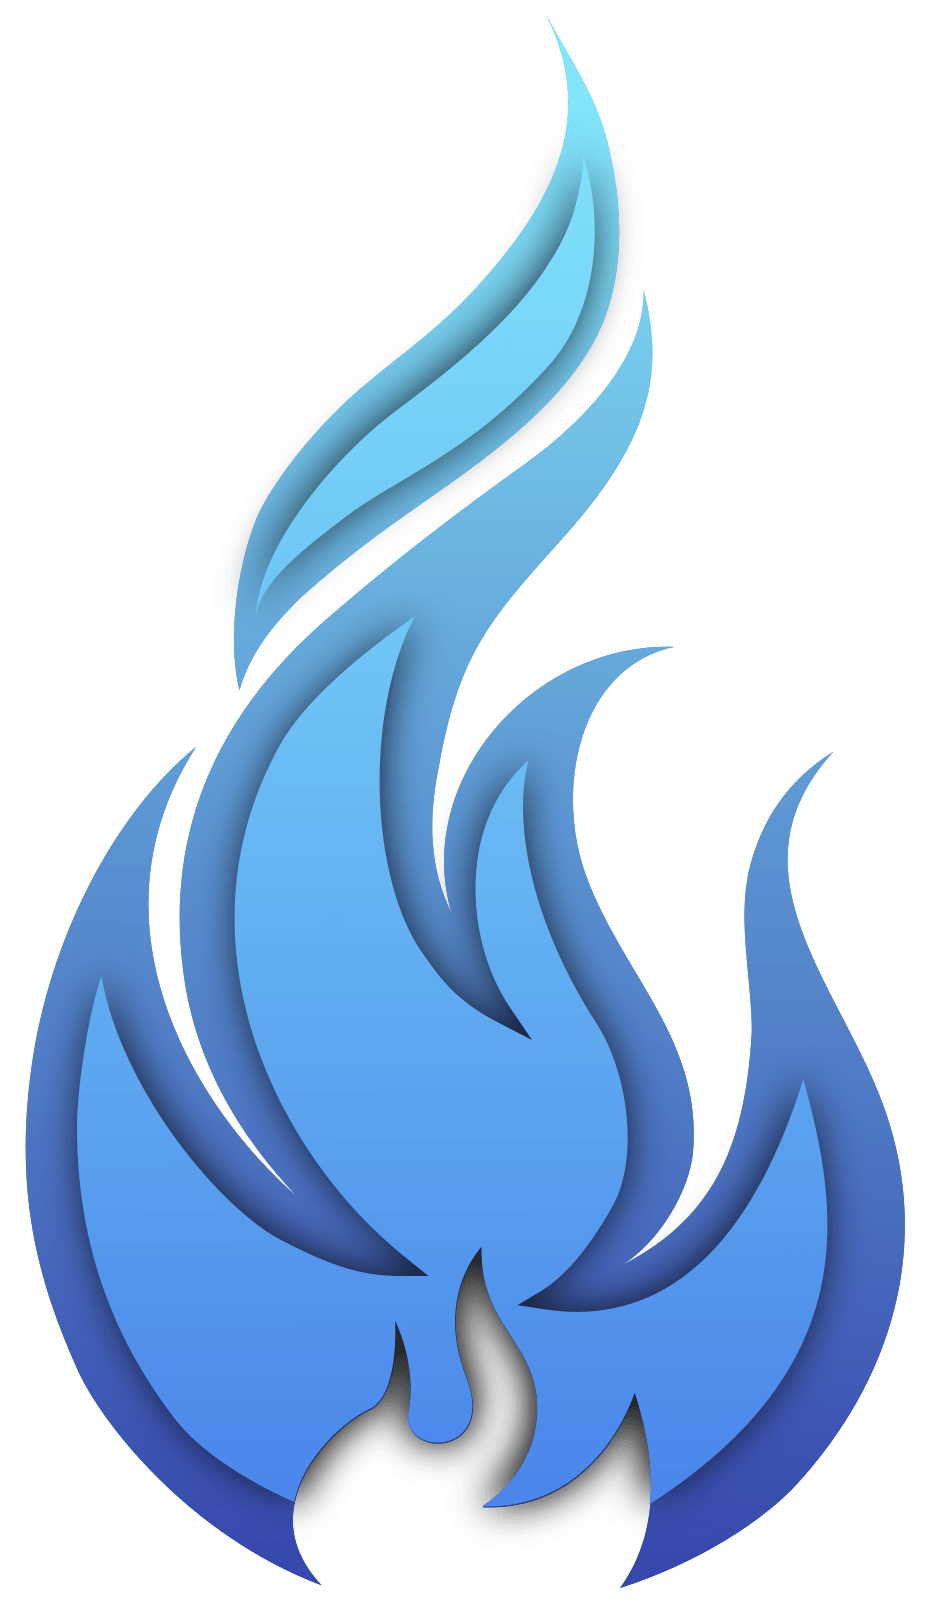 Blue Flame Png : flame, Transparent, Background